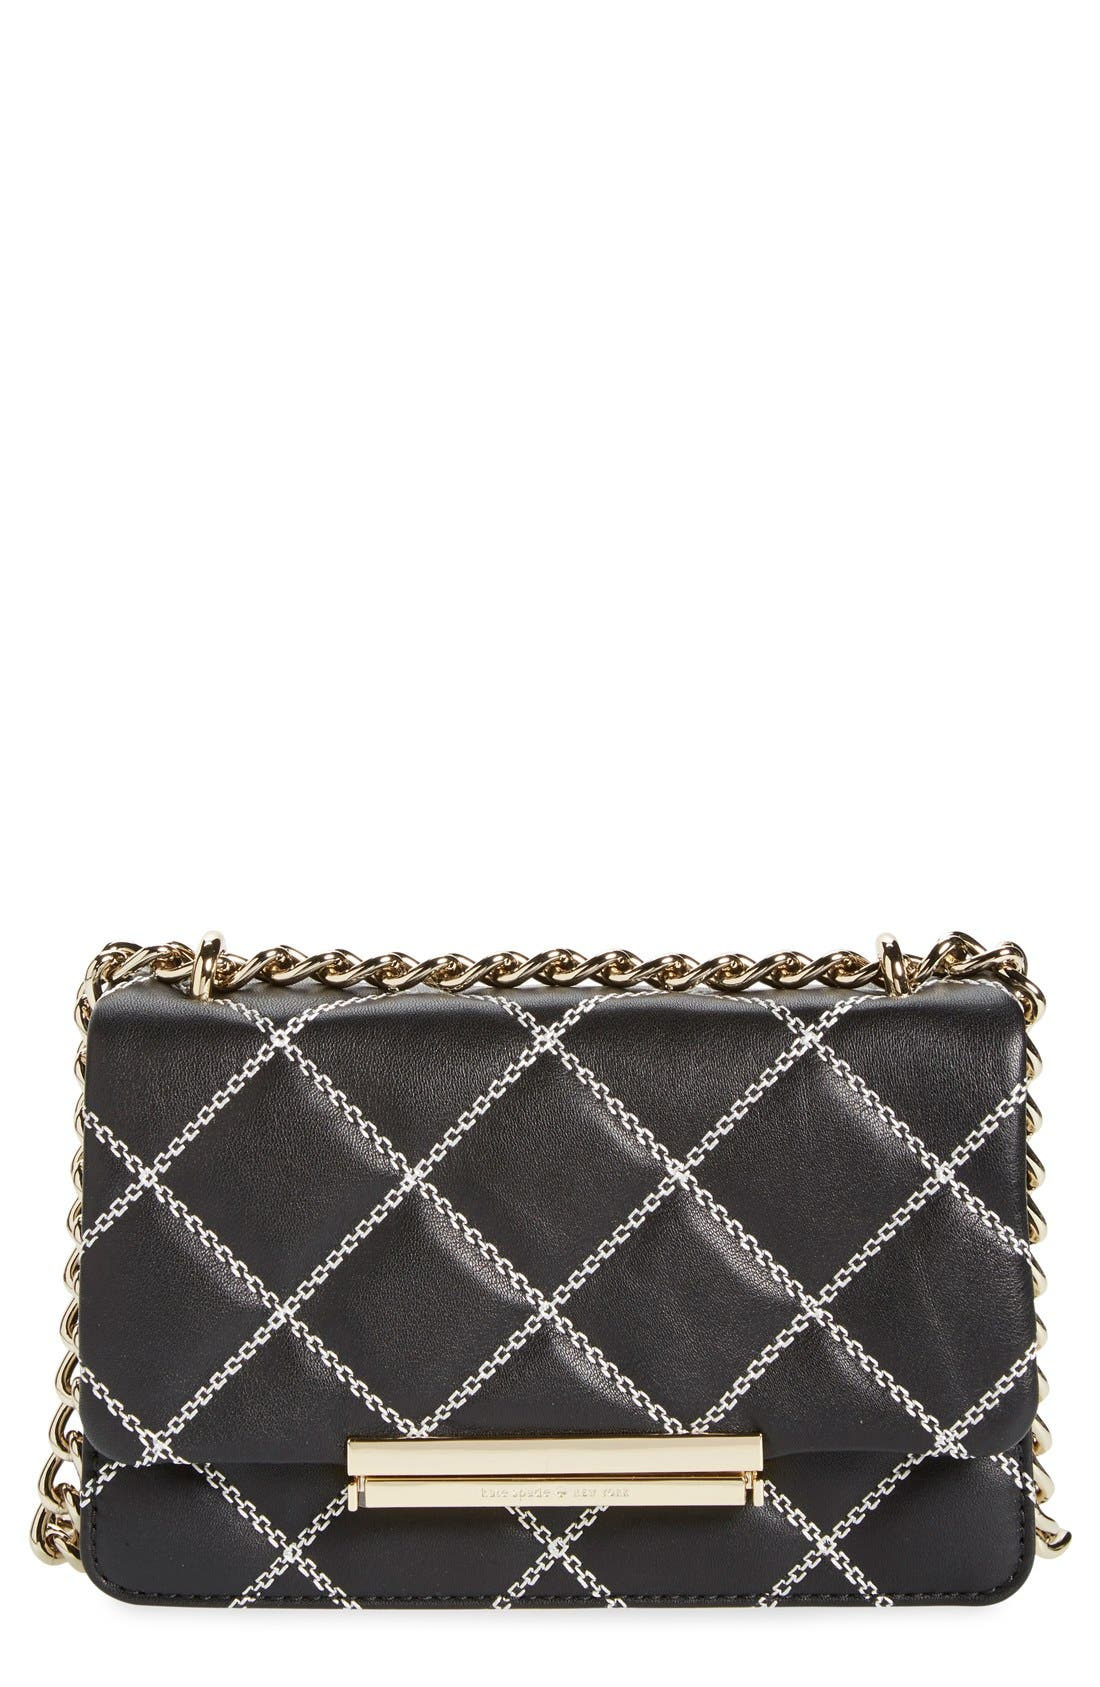 Alternate Image 1 Selected - kate spade new york 'emerson place - mini lawren' quilted leather crossbody bag